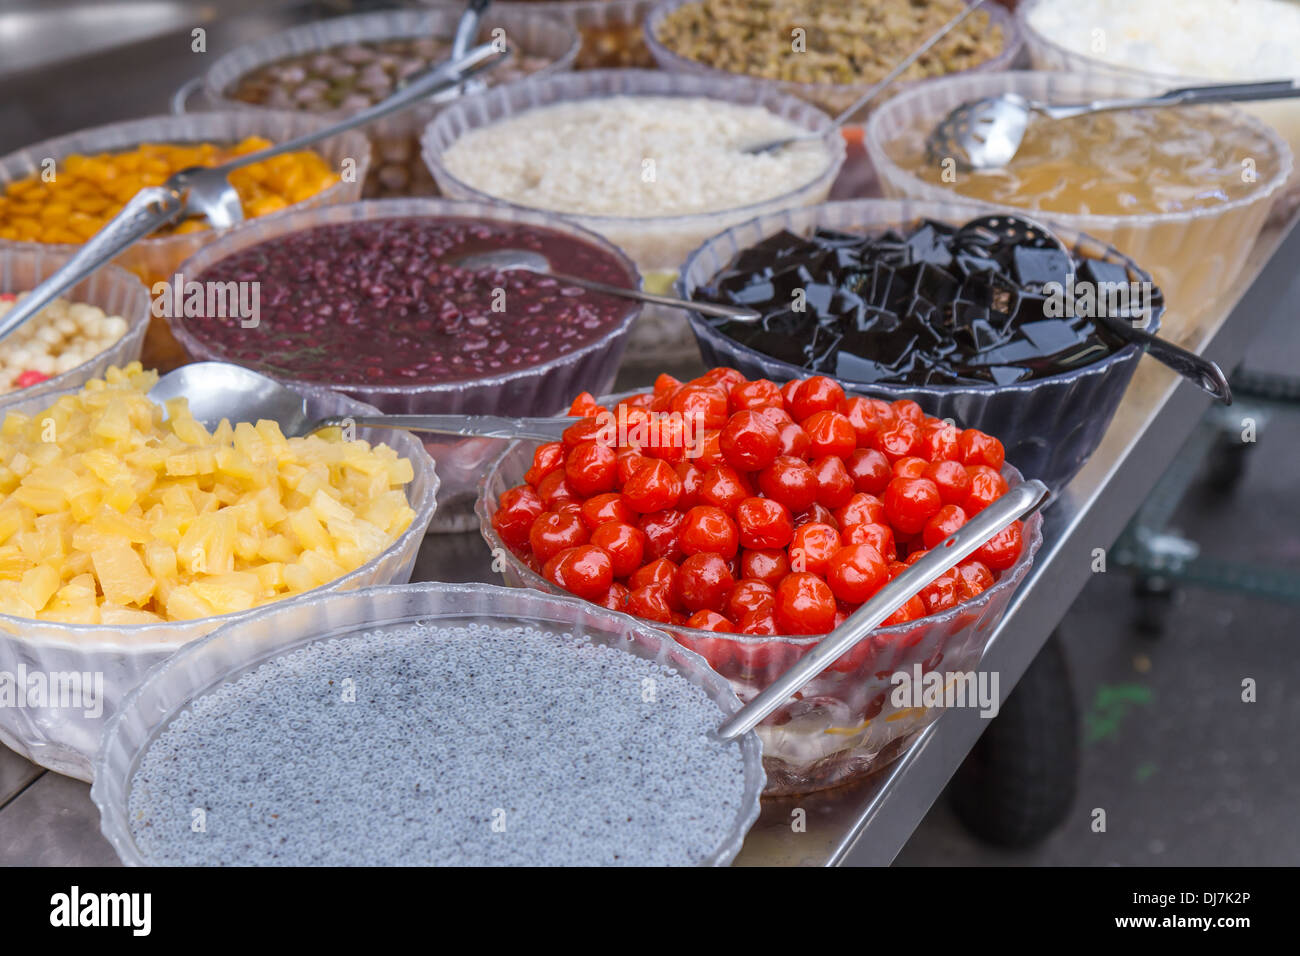 Toppings for Taiwanese shaved ice dessert at a vendor - Stock Image